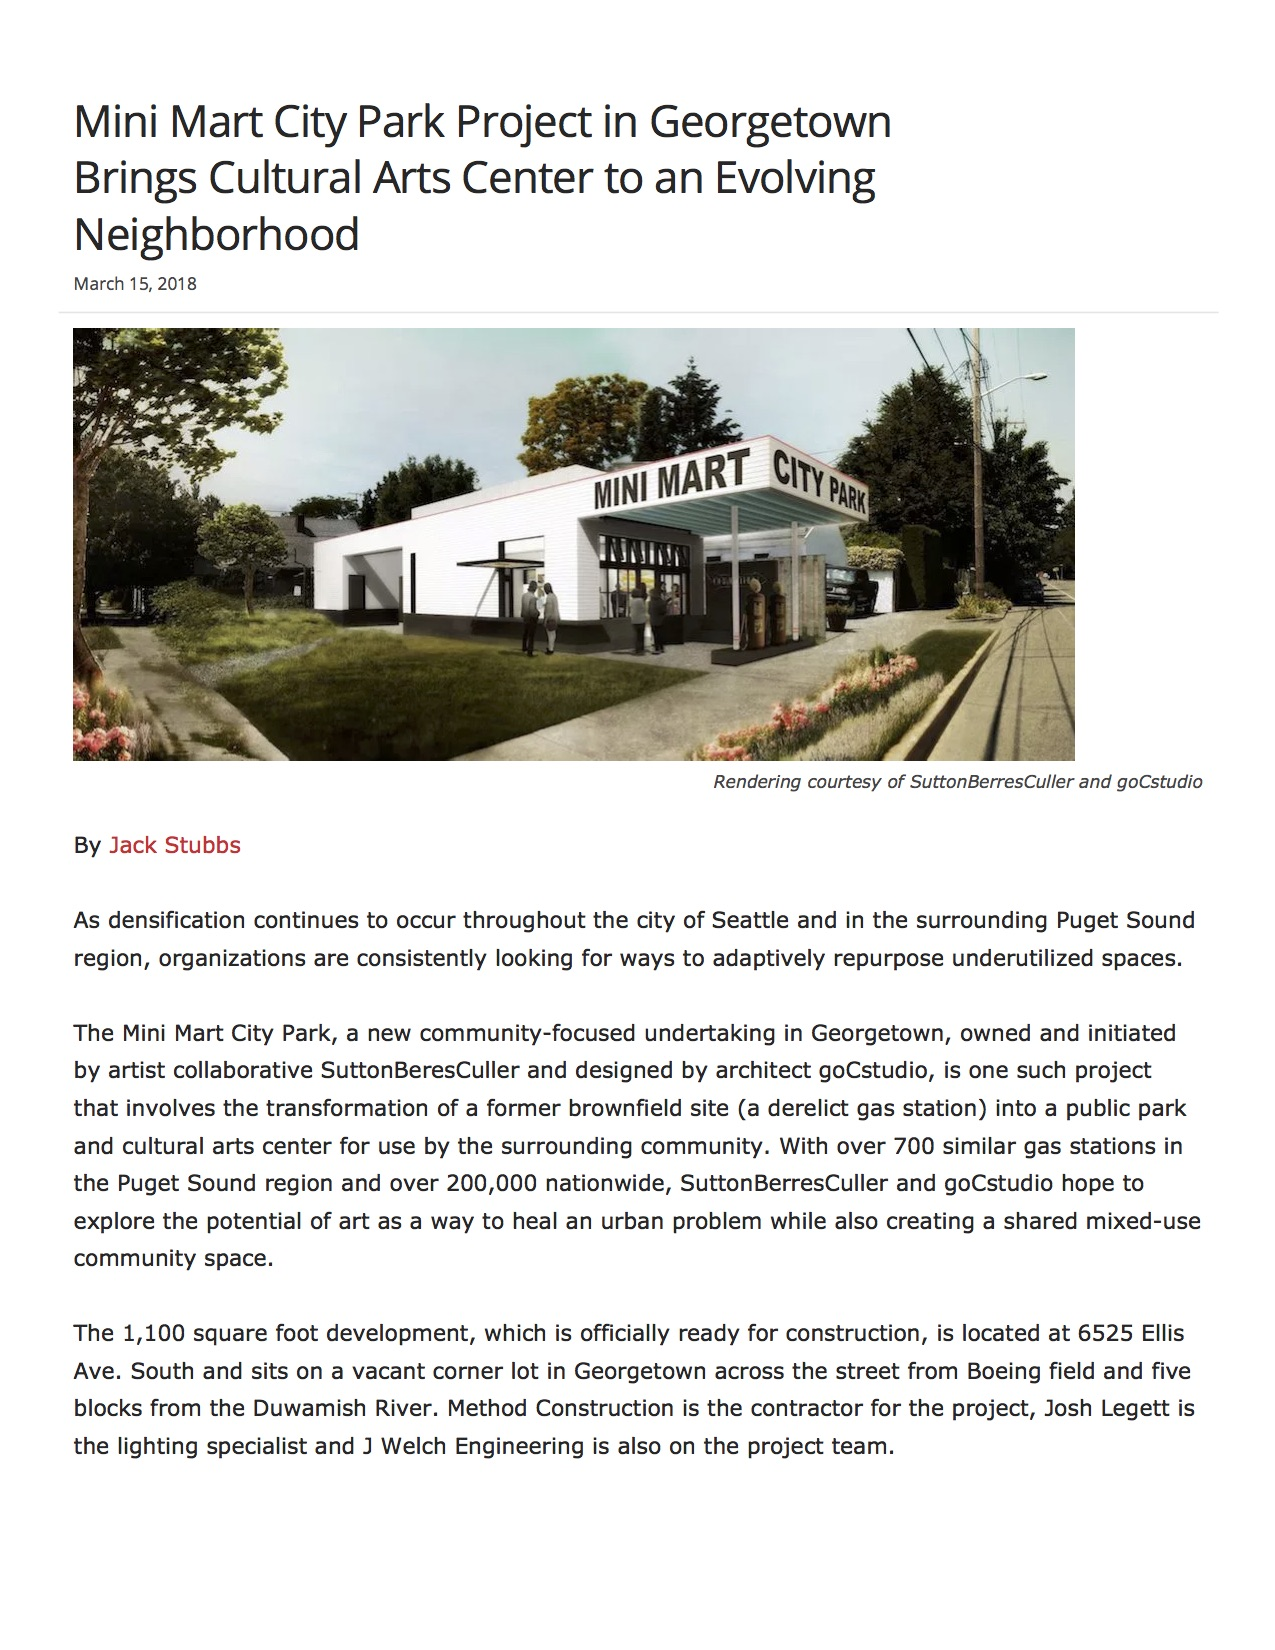 Mini Mart City Park Project in Georgetown Brings Cultural Arts Center to an Evolving Neighborhood - The Registry pg1.jpg